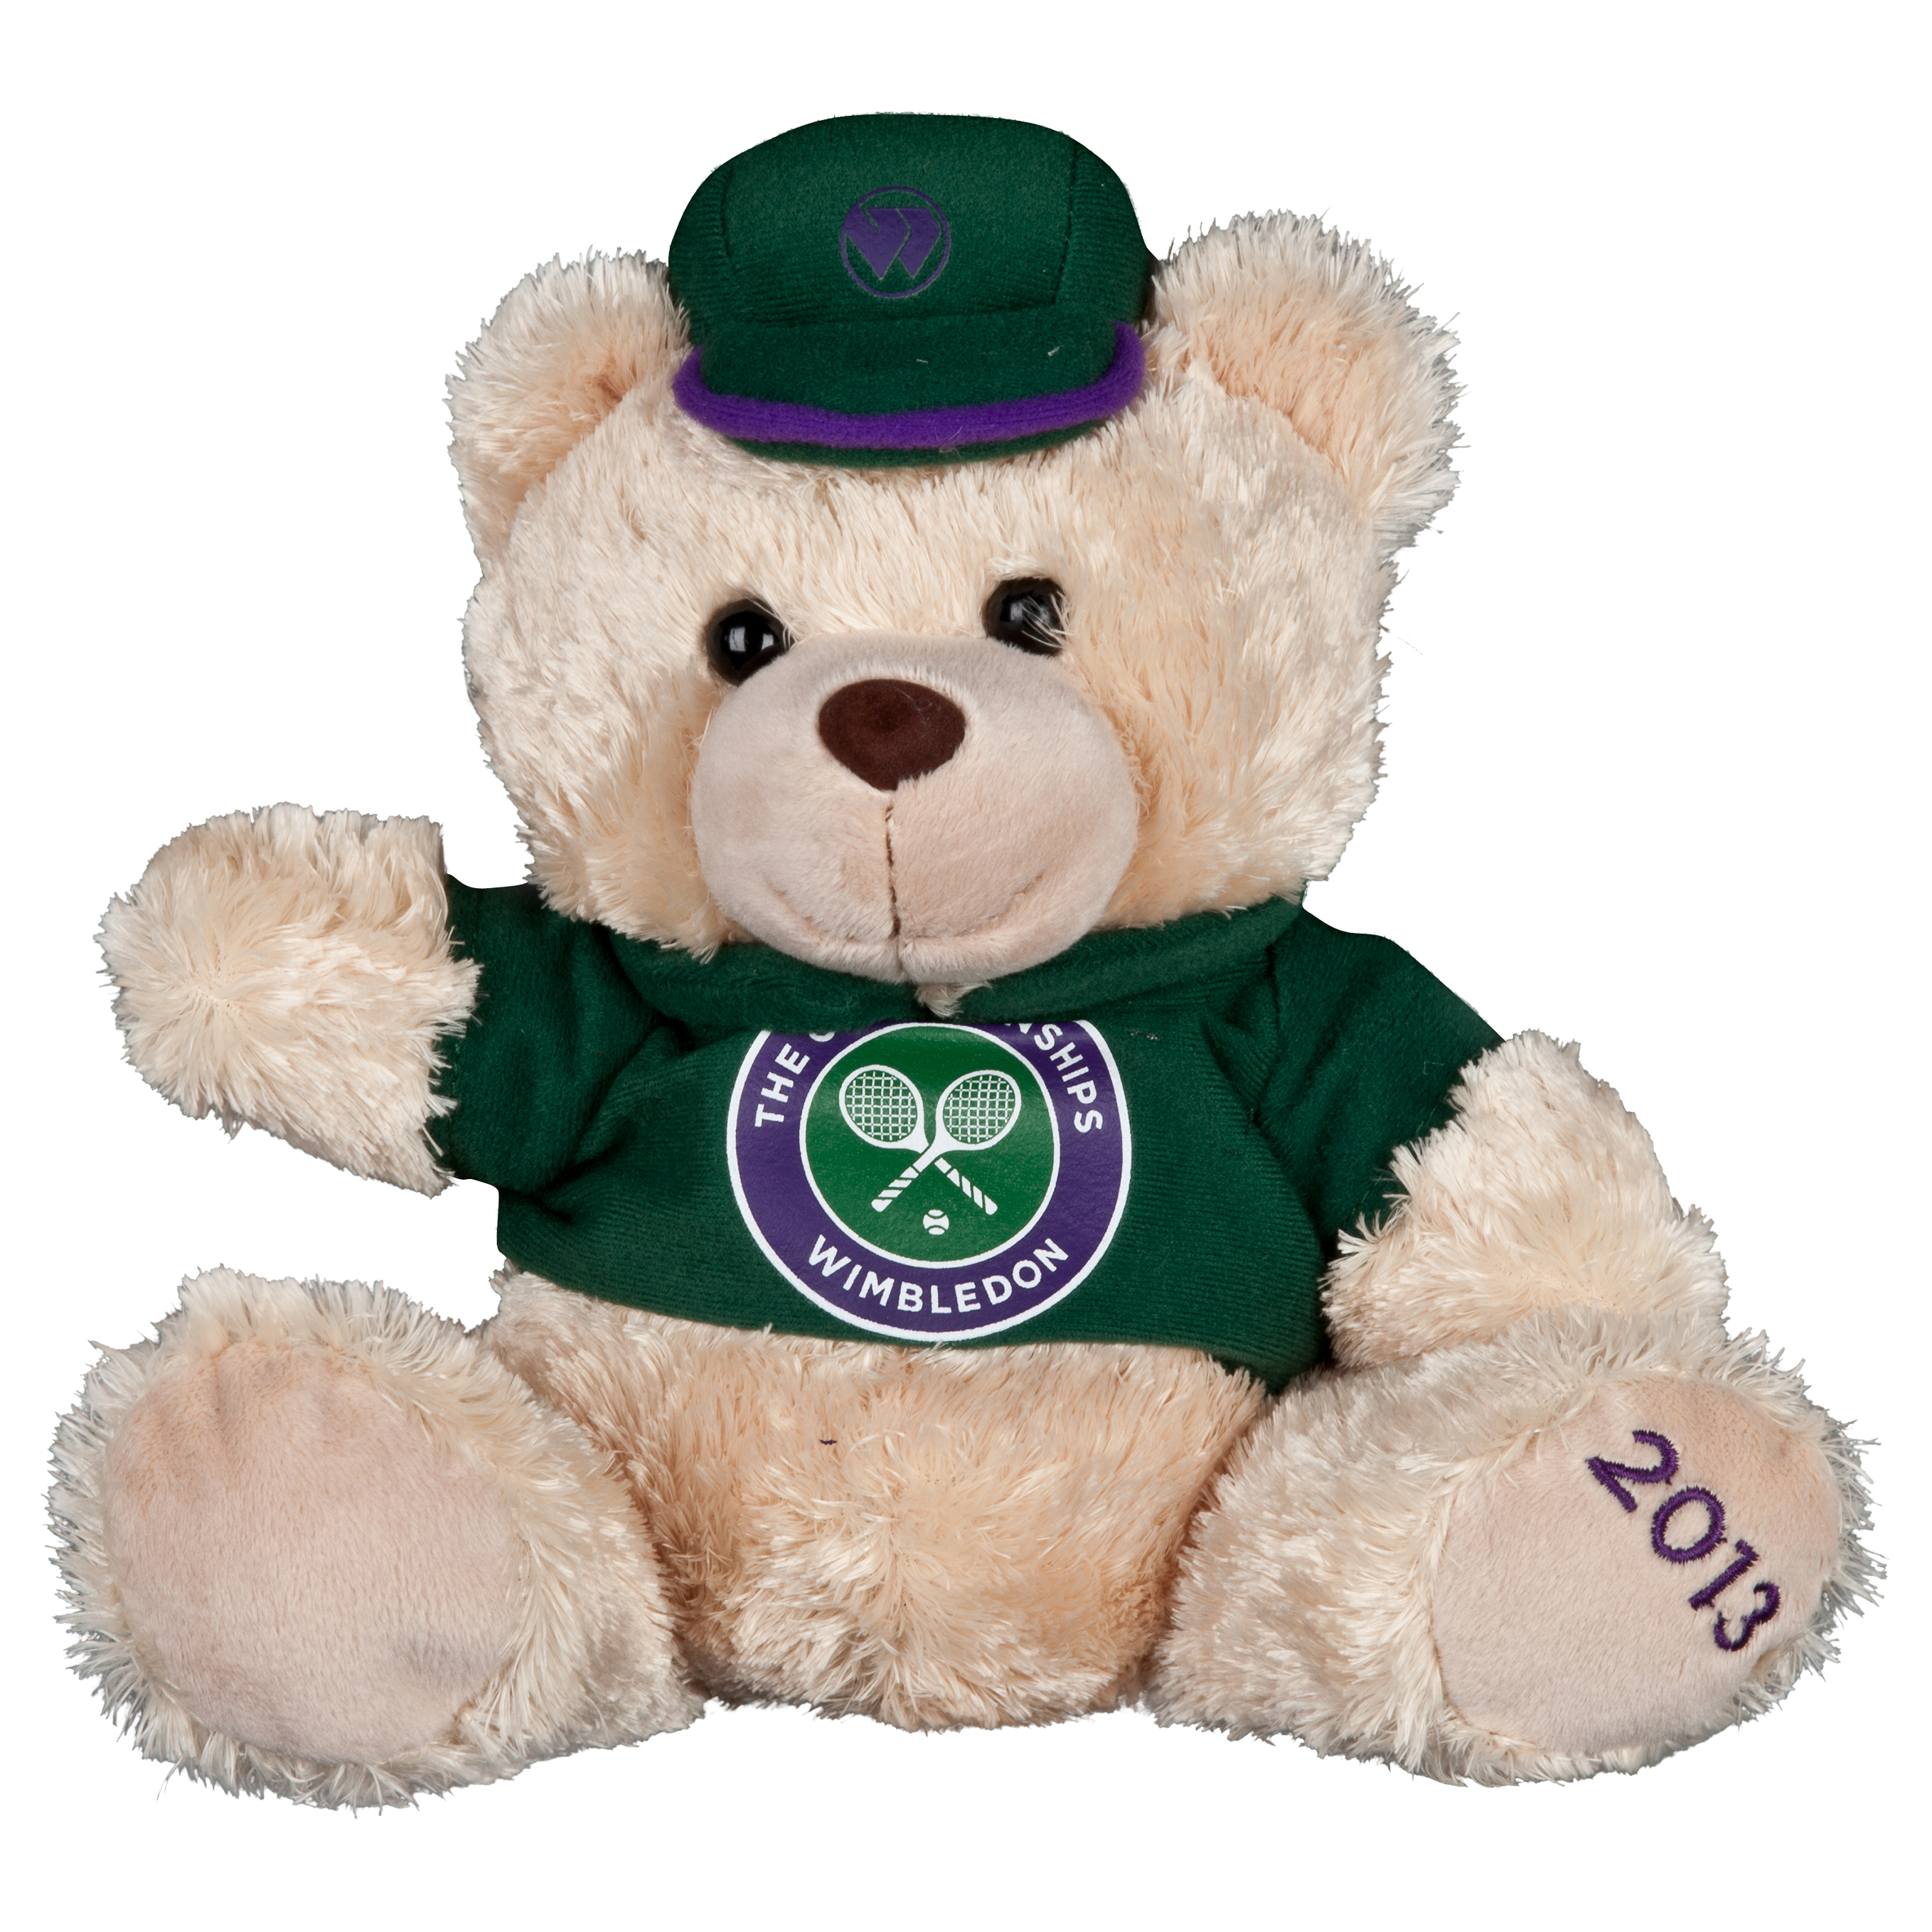 Wimbledon 2013 Dated Bear